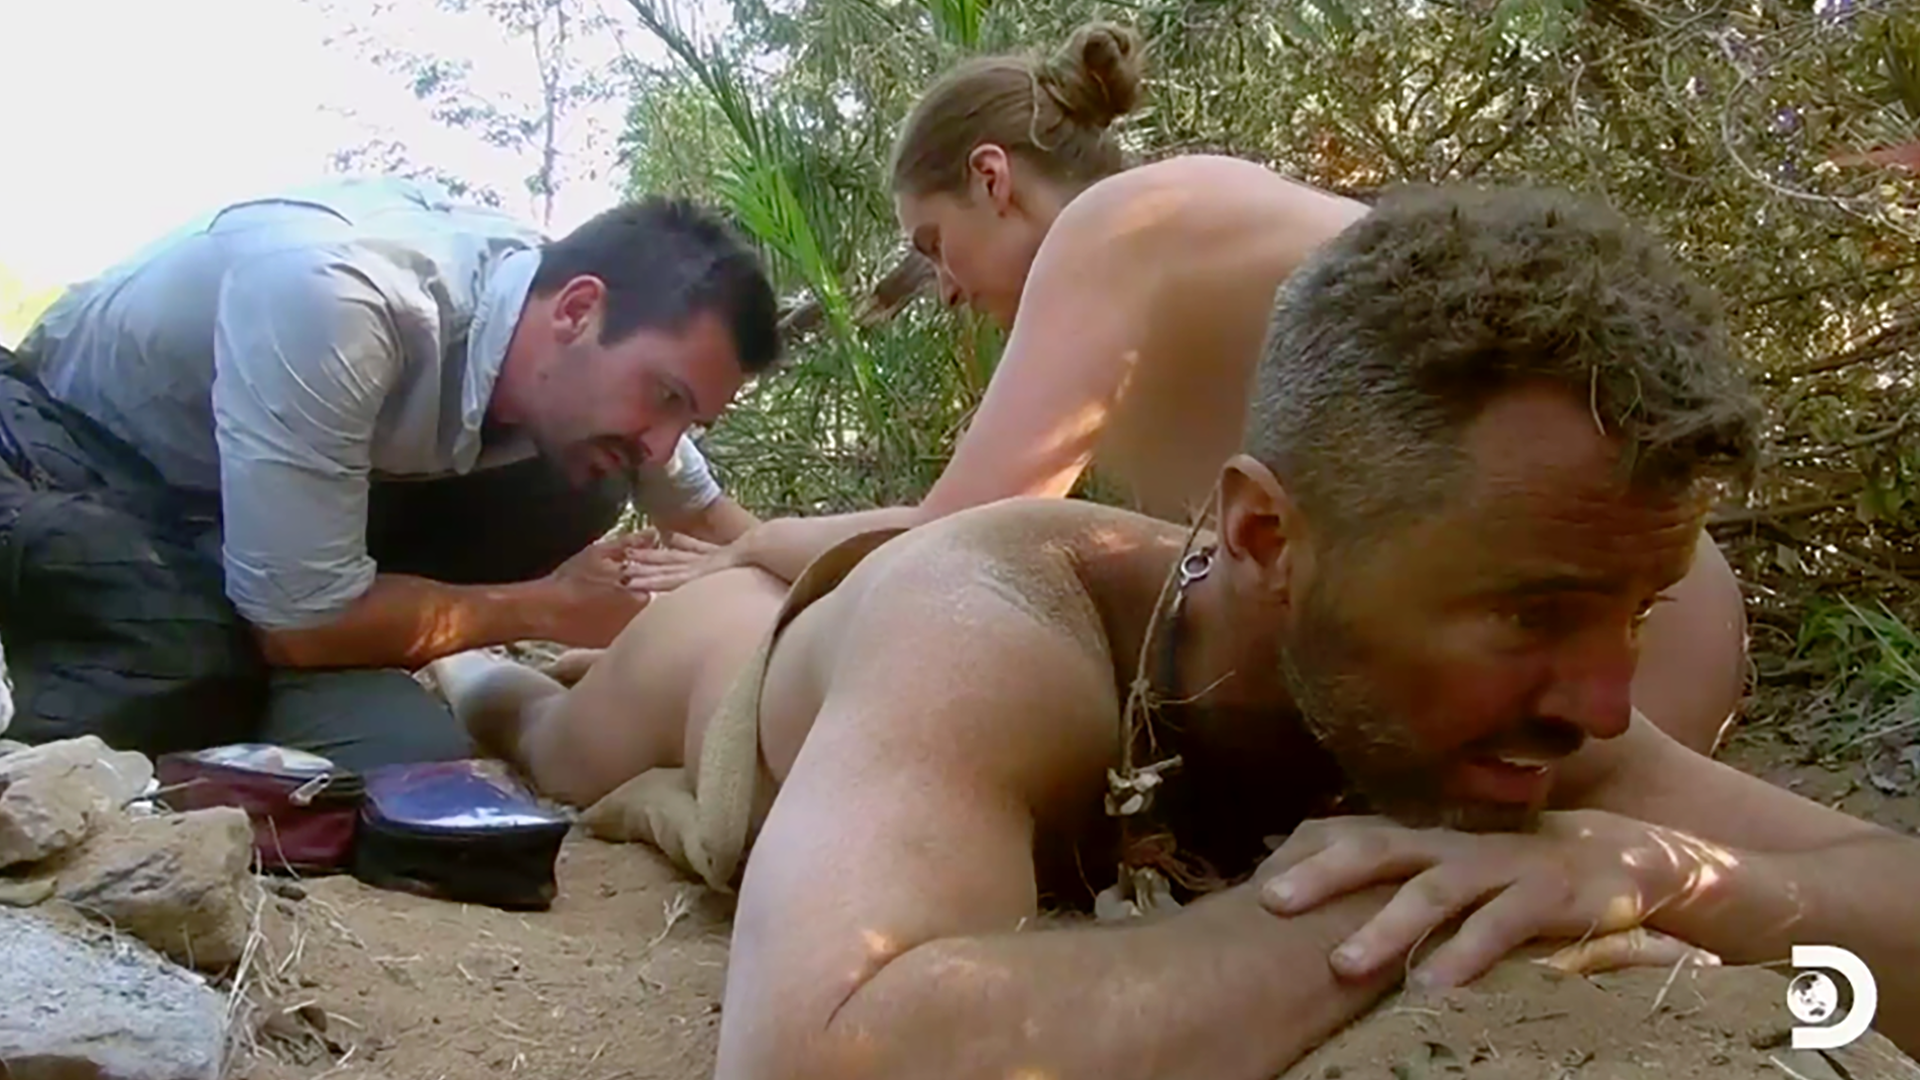 Excruciating butt bite and scorpion sting force 'Naked and Afraid' contestants to tap out